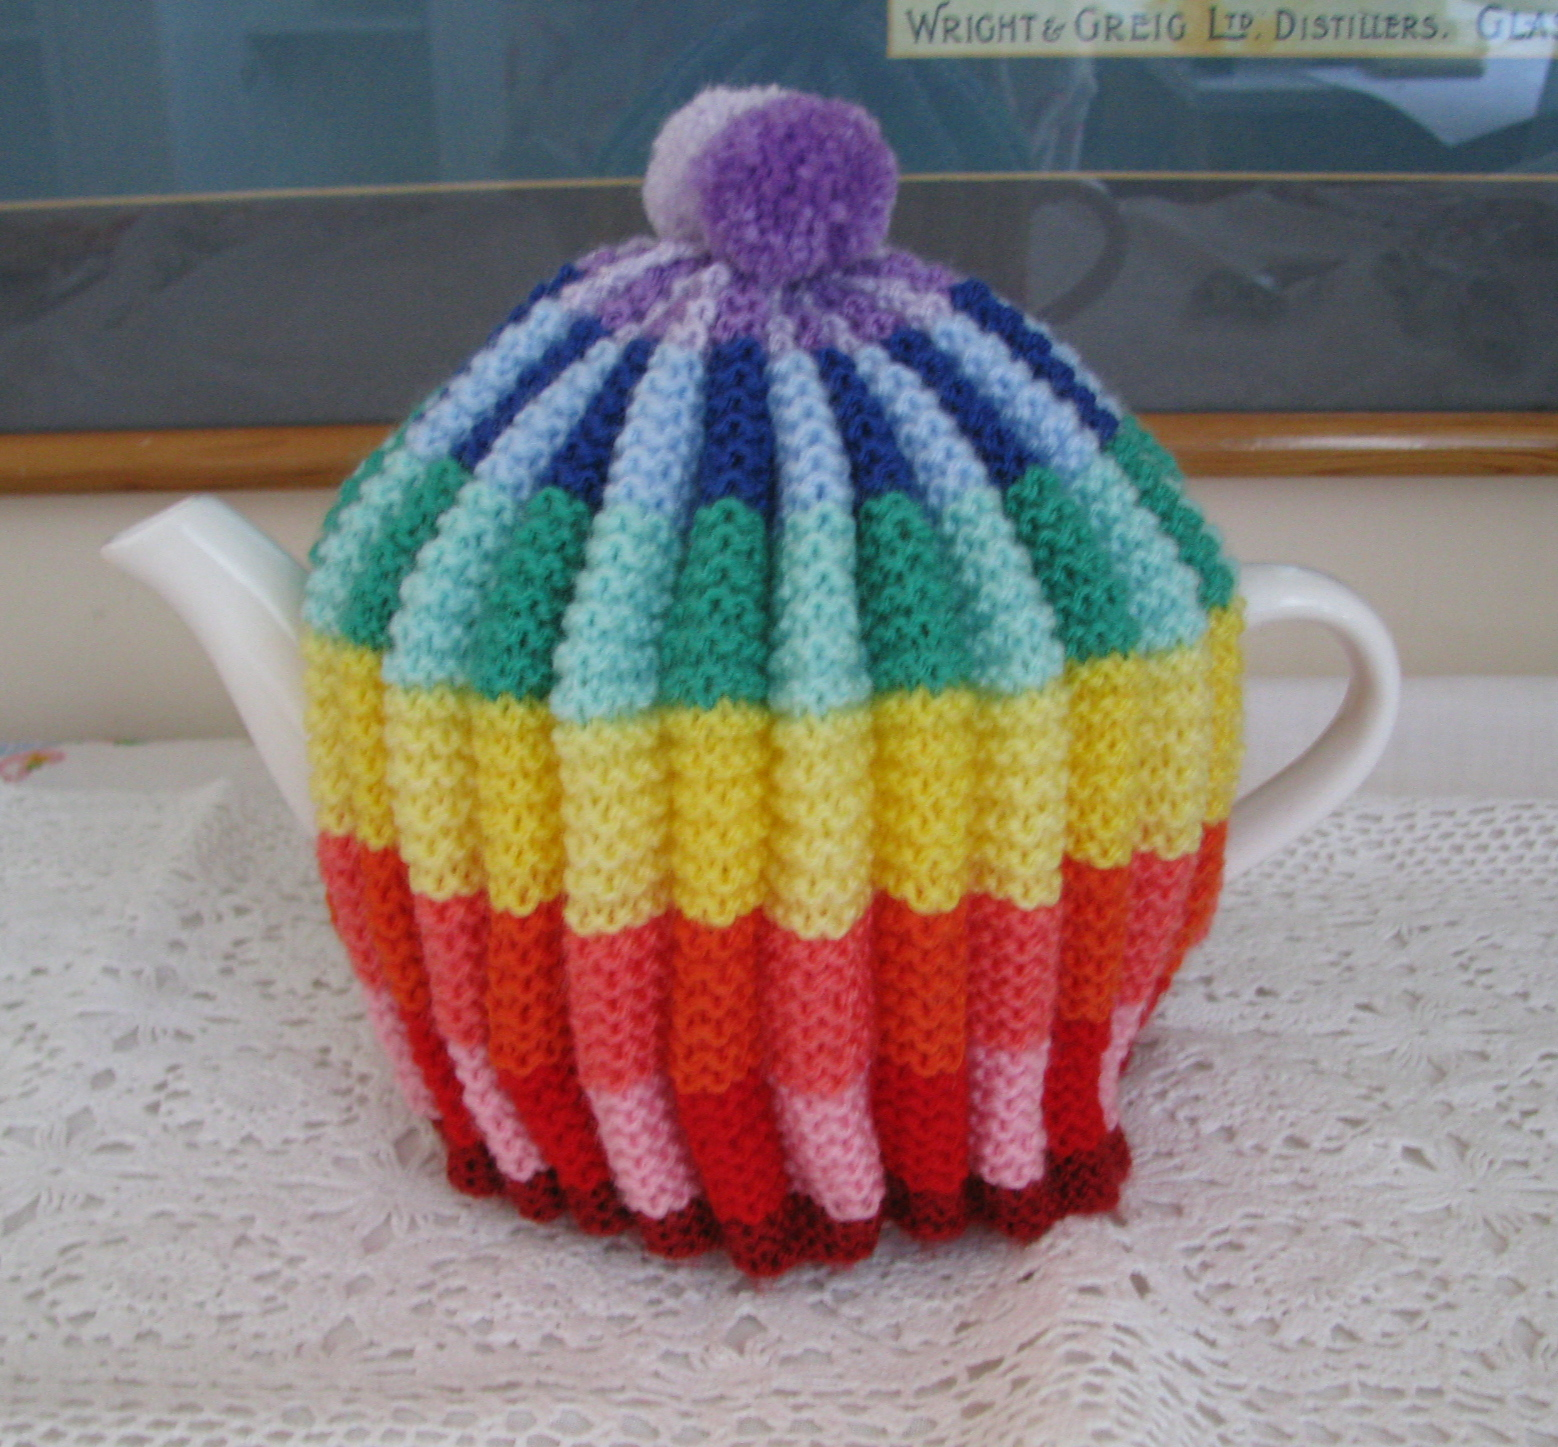 Shortbread & Ginger: Rainbow Knitted Tea Cosy